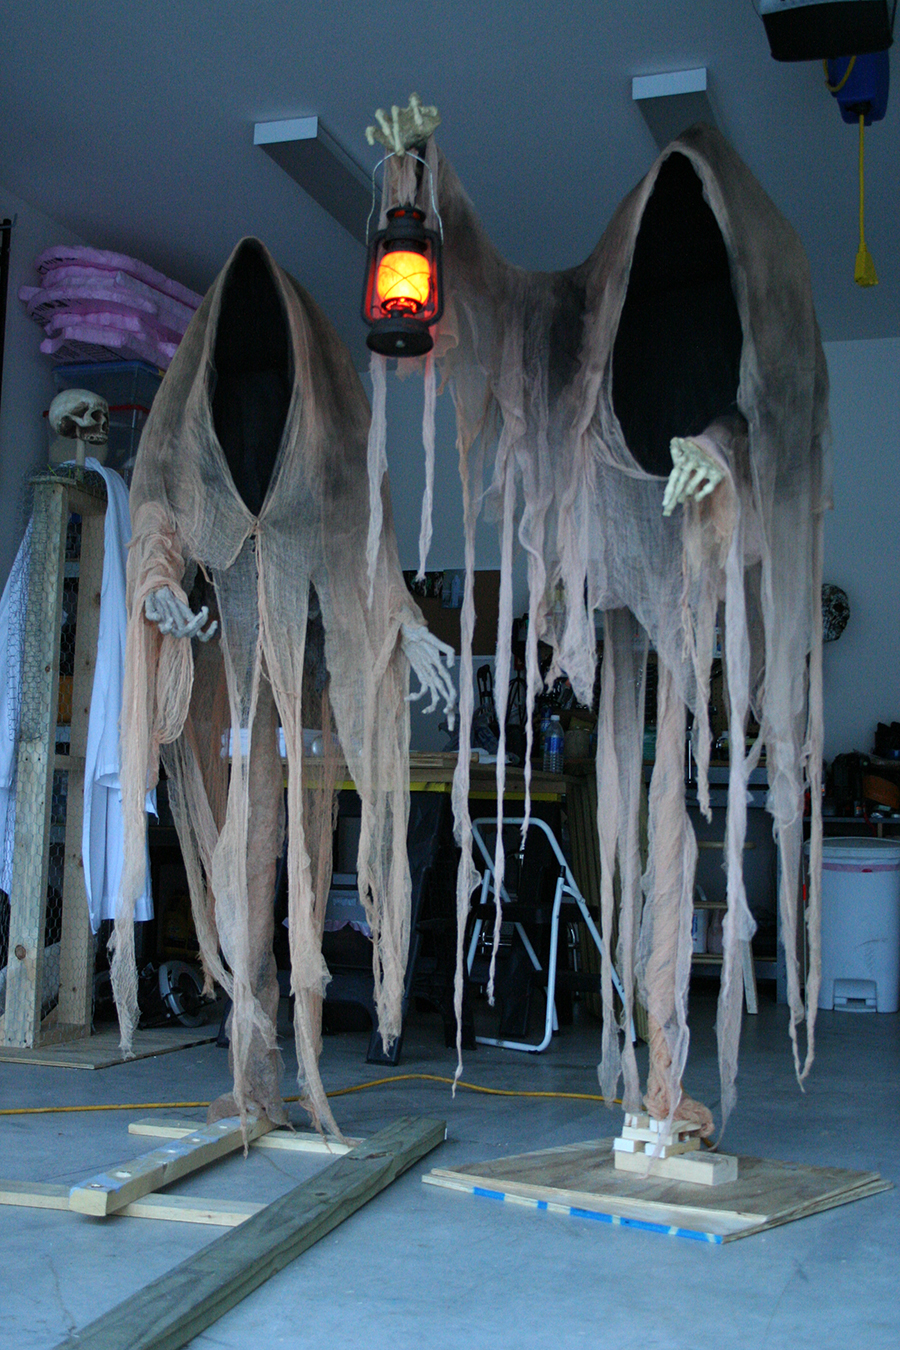 40+ Funny &amp Scary Halloween Ghost Decorations Ideas - Spooky Halloween Props